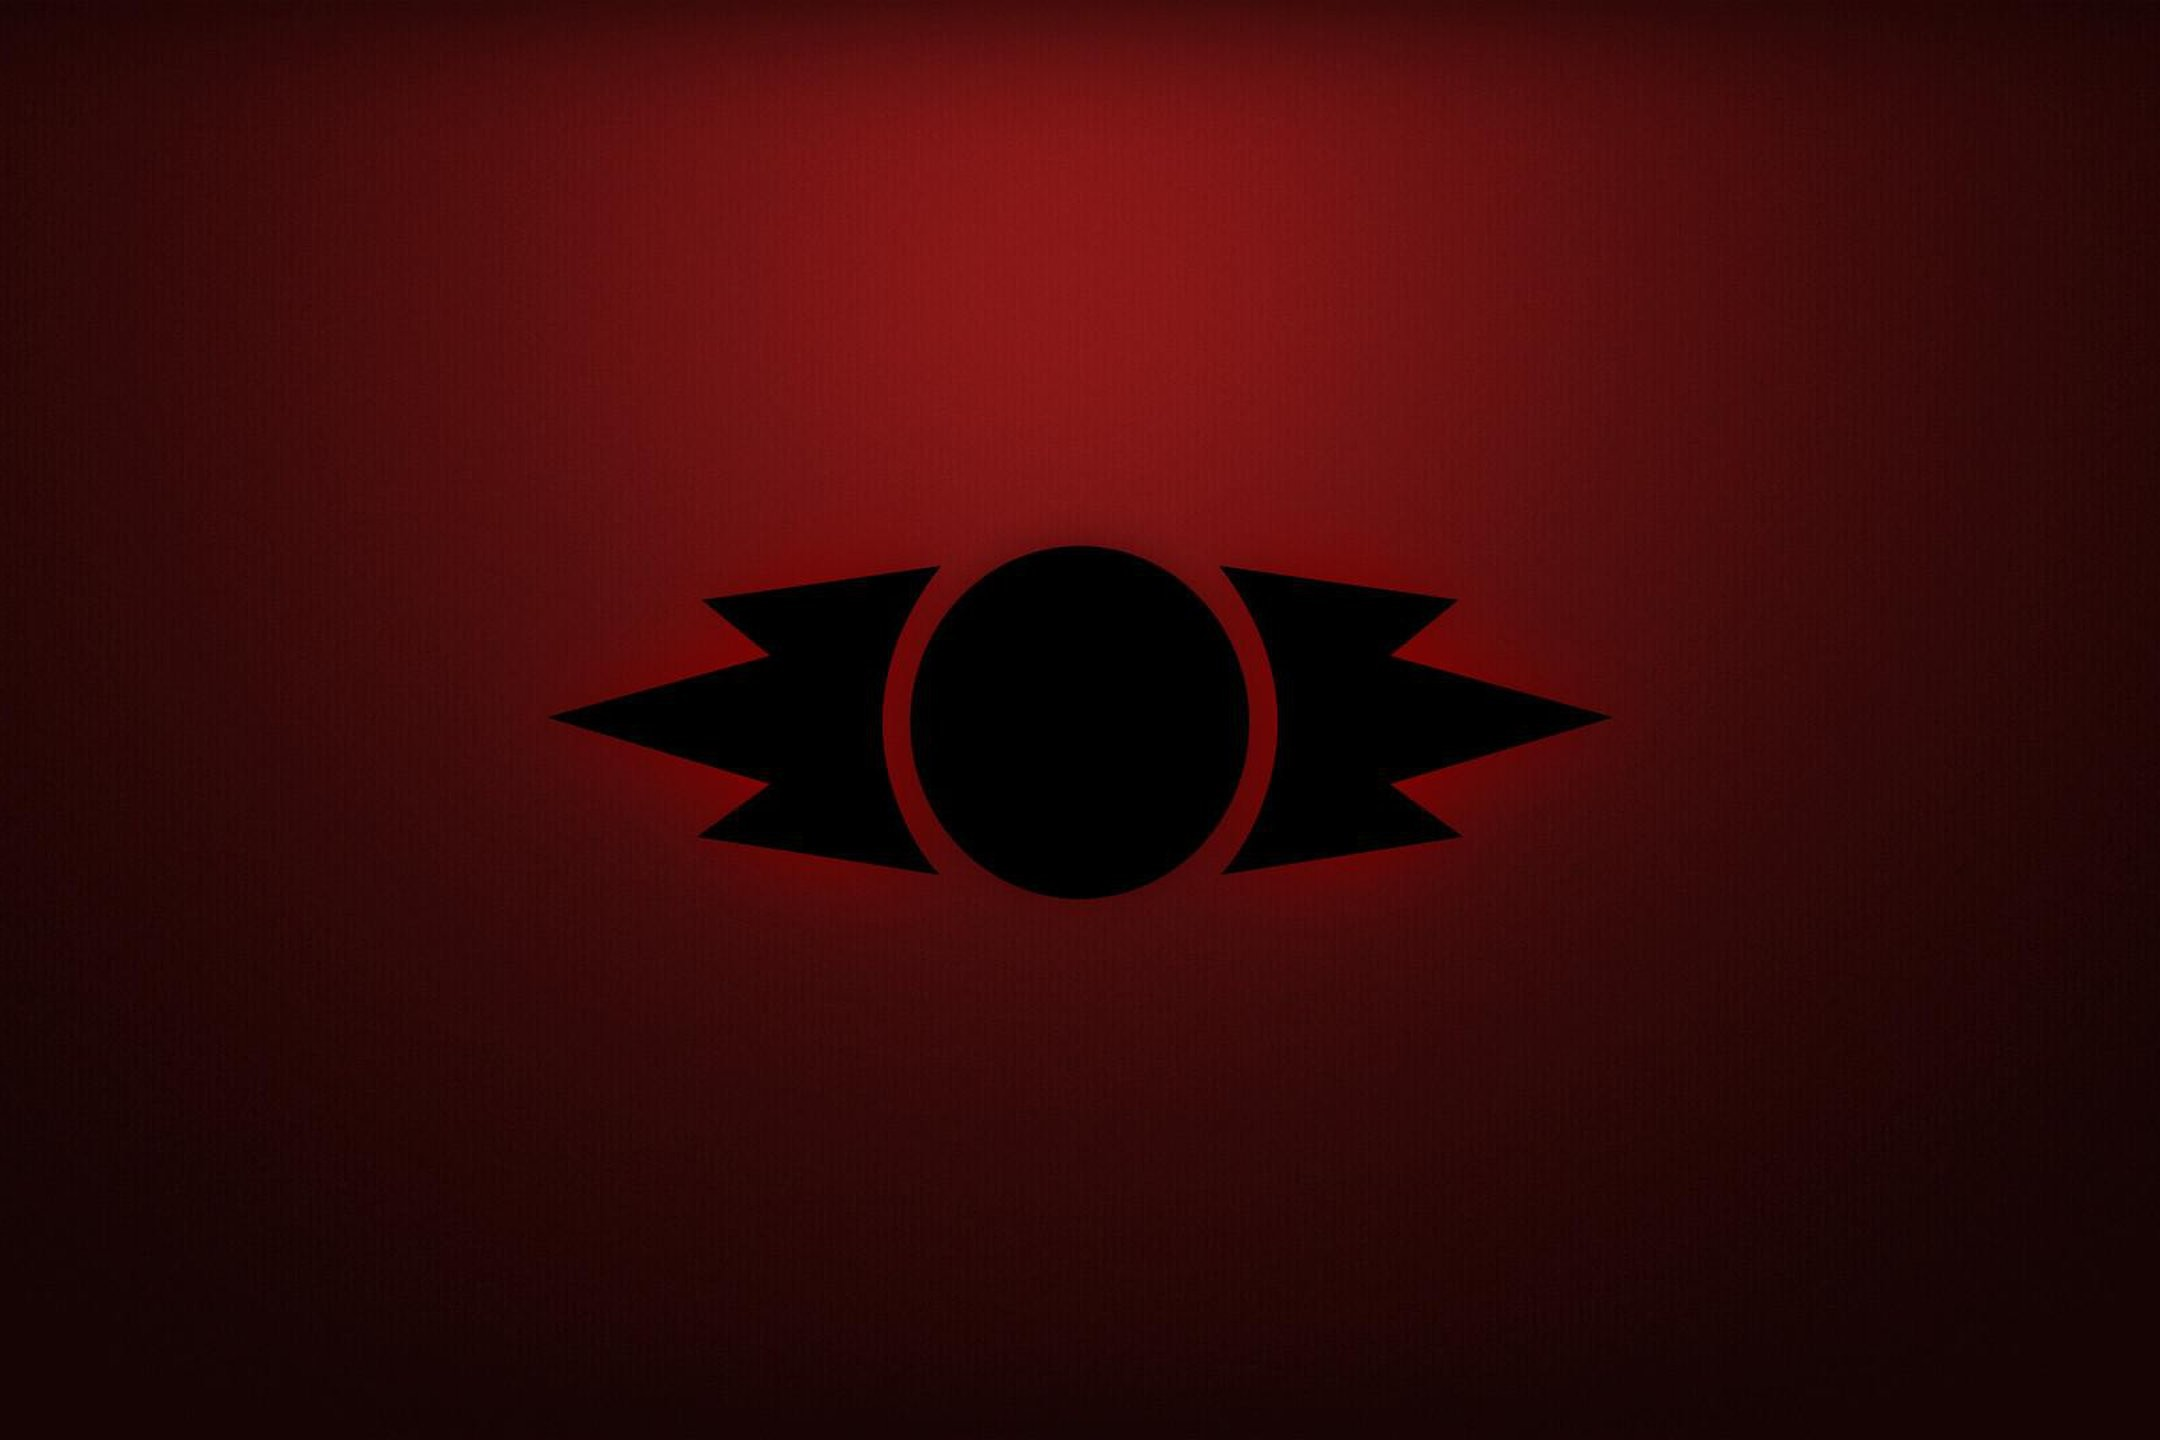 Res: 2160x1440, Full HD+ Black in Red Jedi Symbol Wallpaper : Symbols Wallpaper for Phone & Desktop  Backgrounds Collections